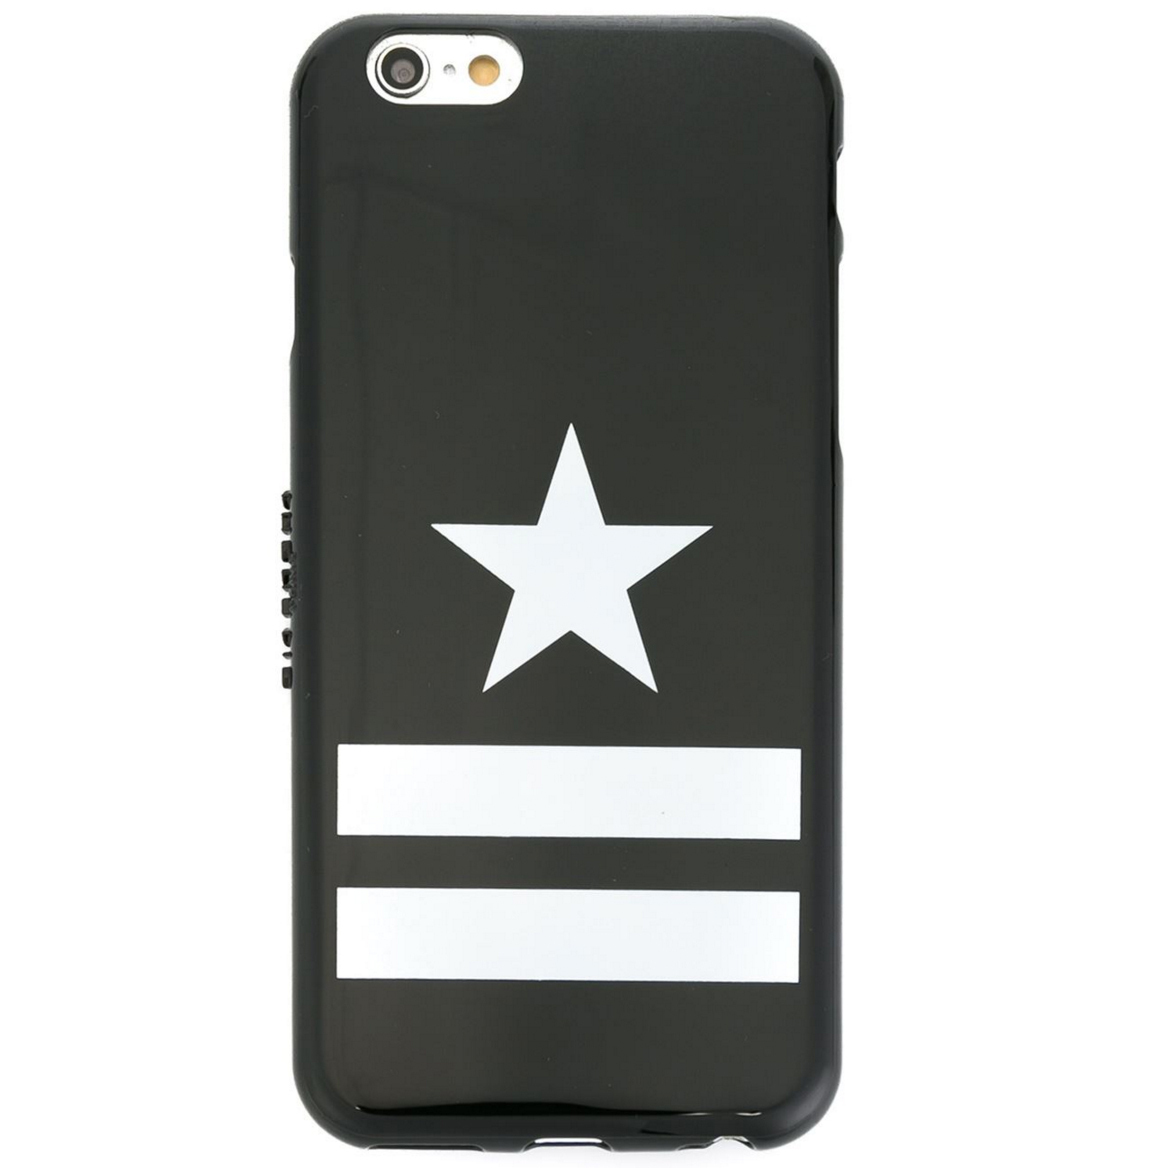 ☆ GIVENCHY ☆ Star and stripe iPhone 6 case